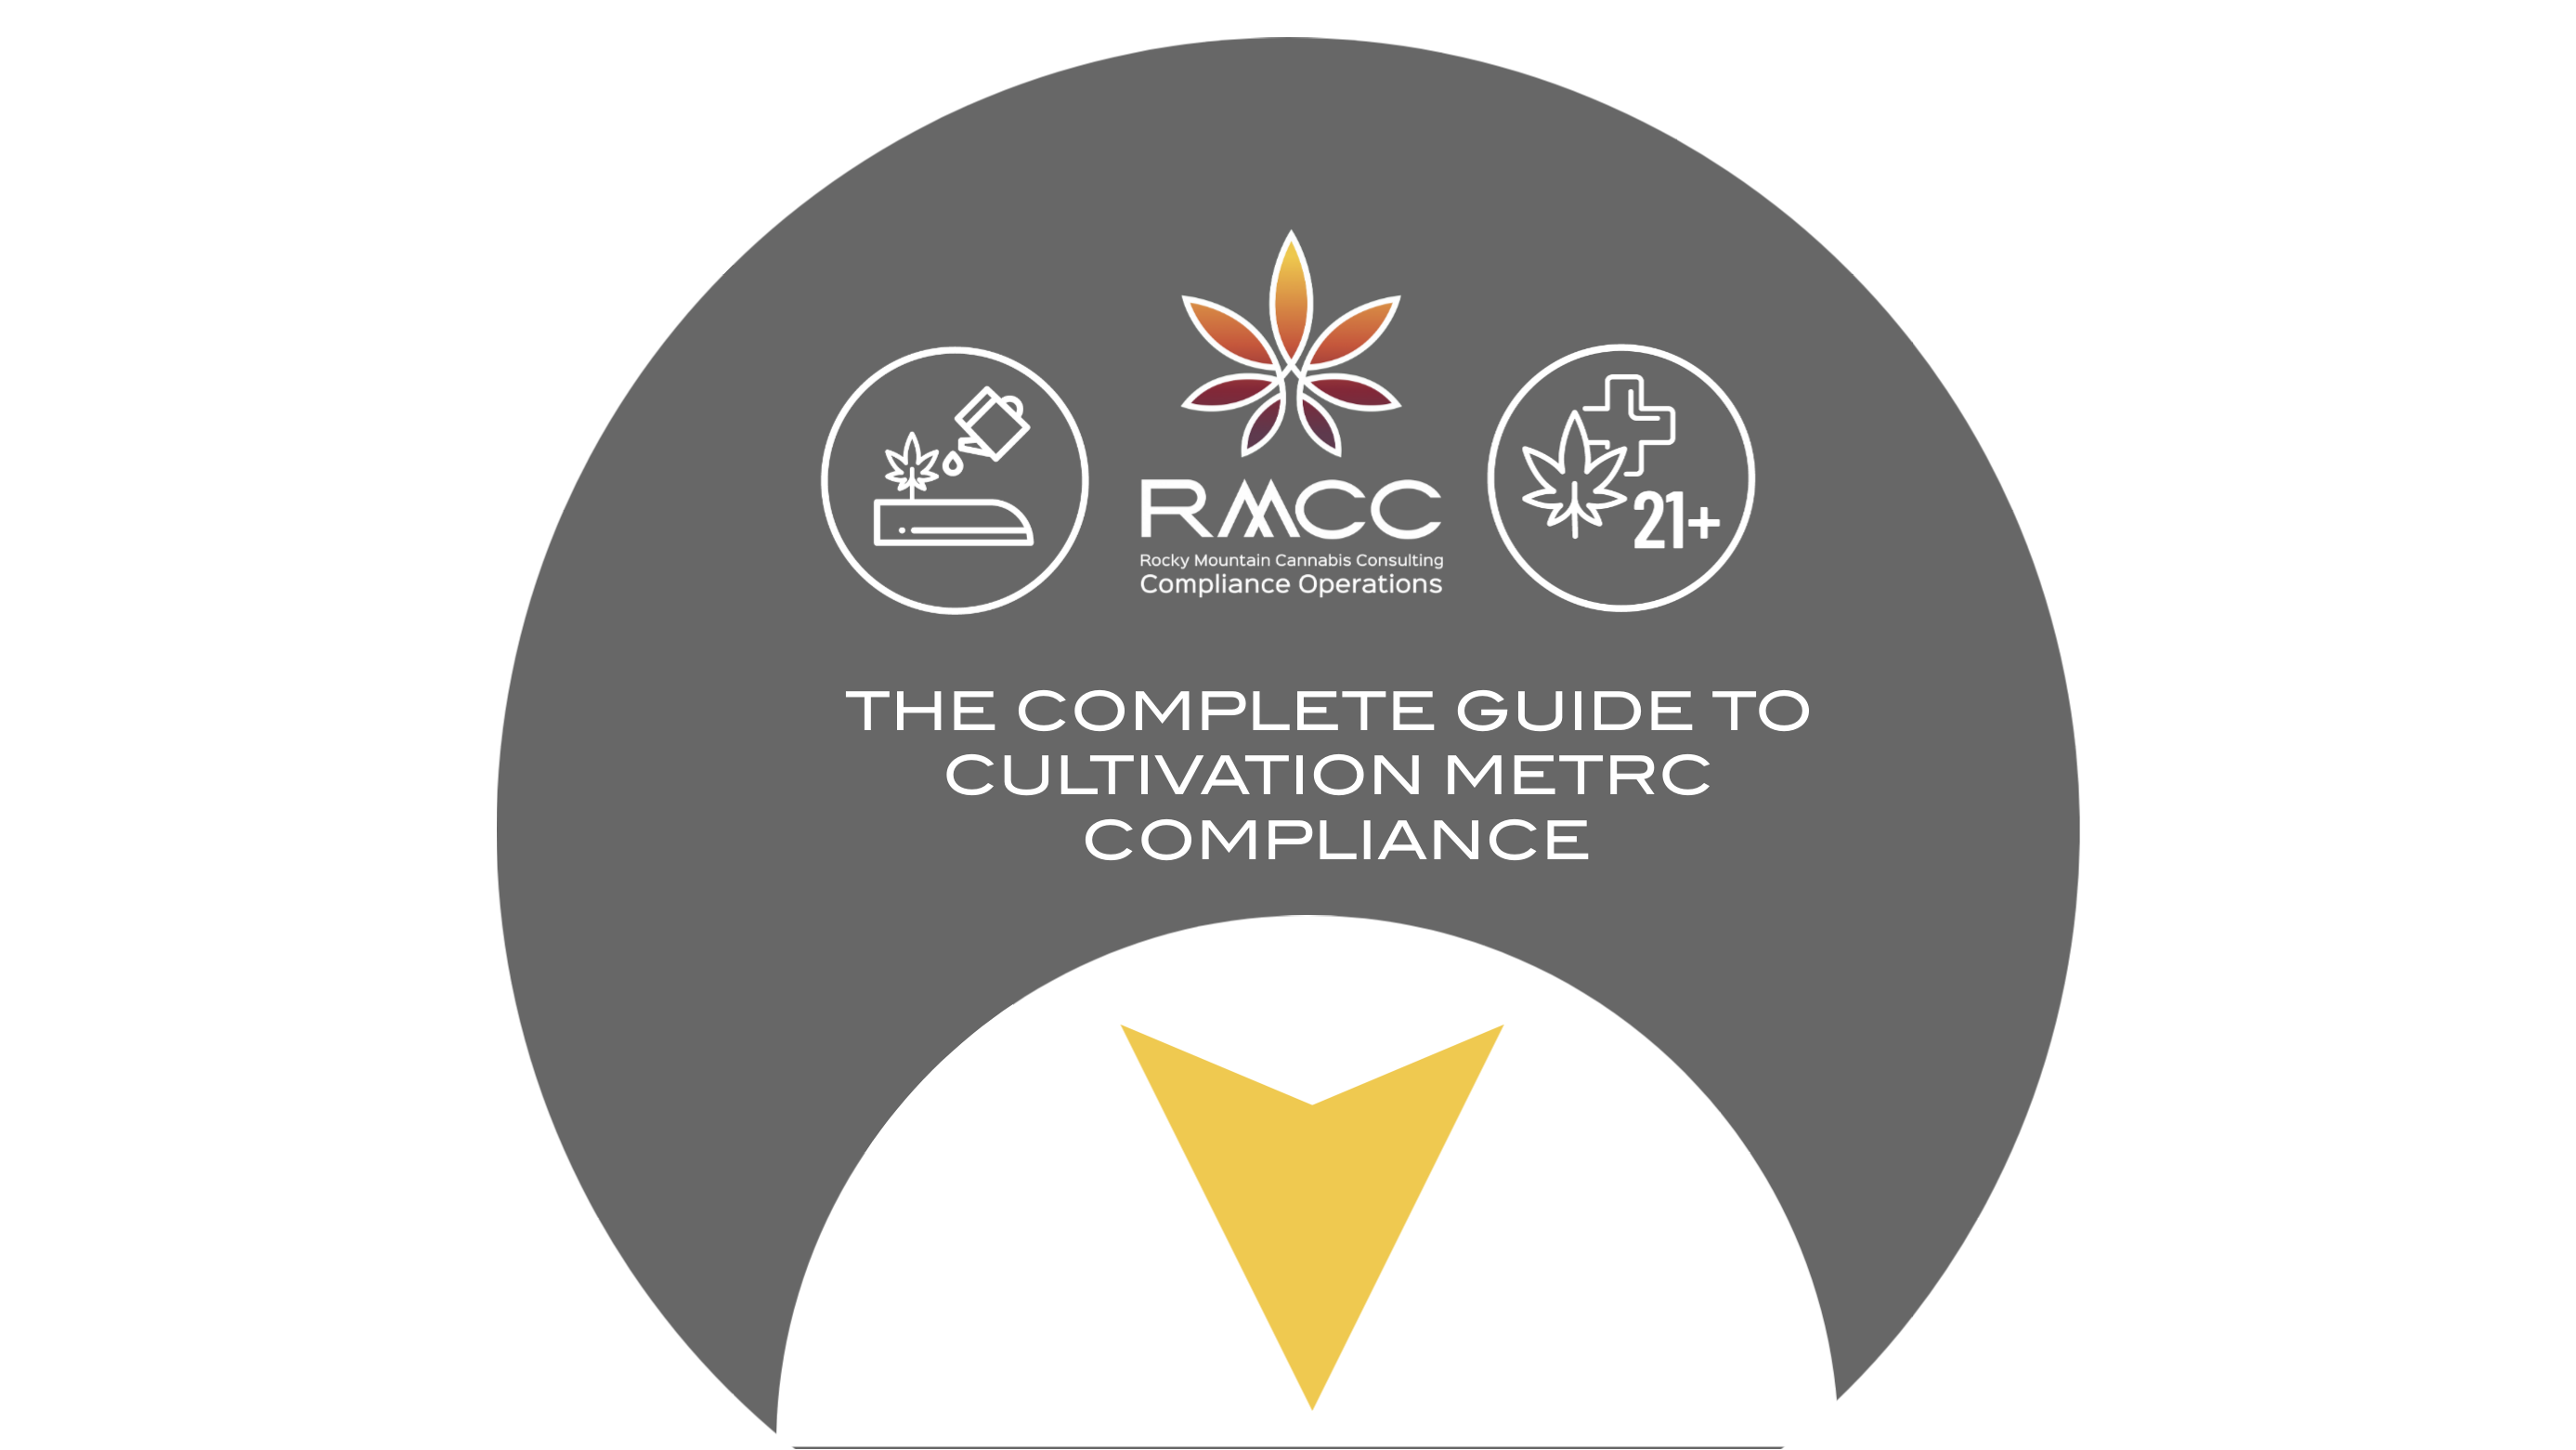 THE COMPLETE GUIDE TO CULTIVATION METRC COMPLIANCE RMCC METRC tickets, METRC training, Oklahoma cannabis, Maine Cannabis, Oregon Cannabis, coronavirus, cannabis certification